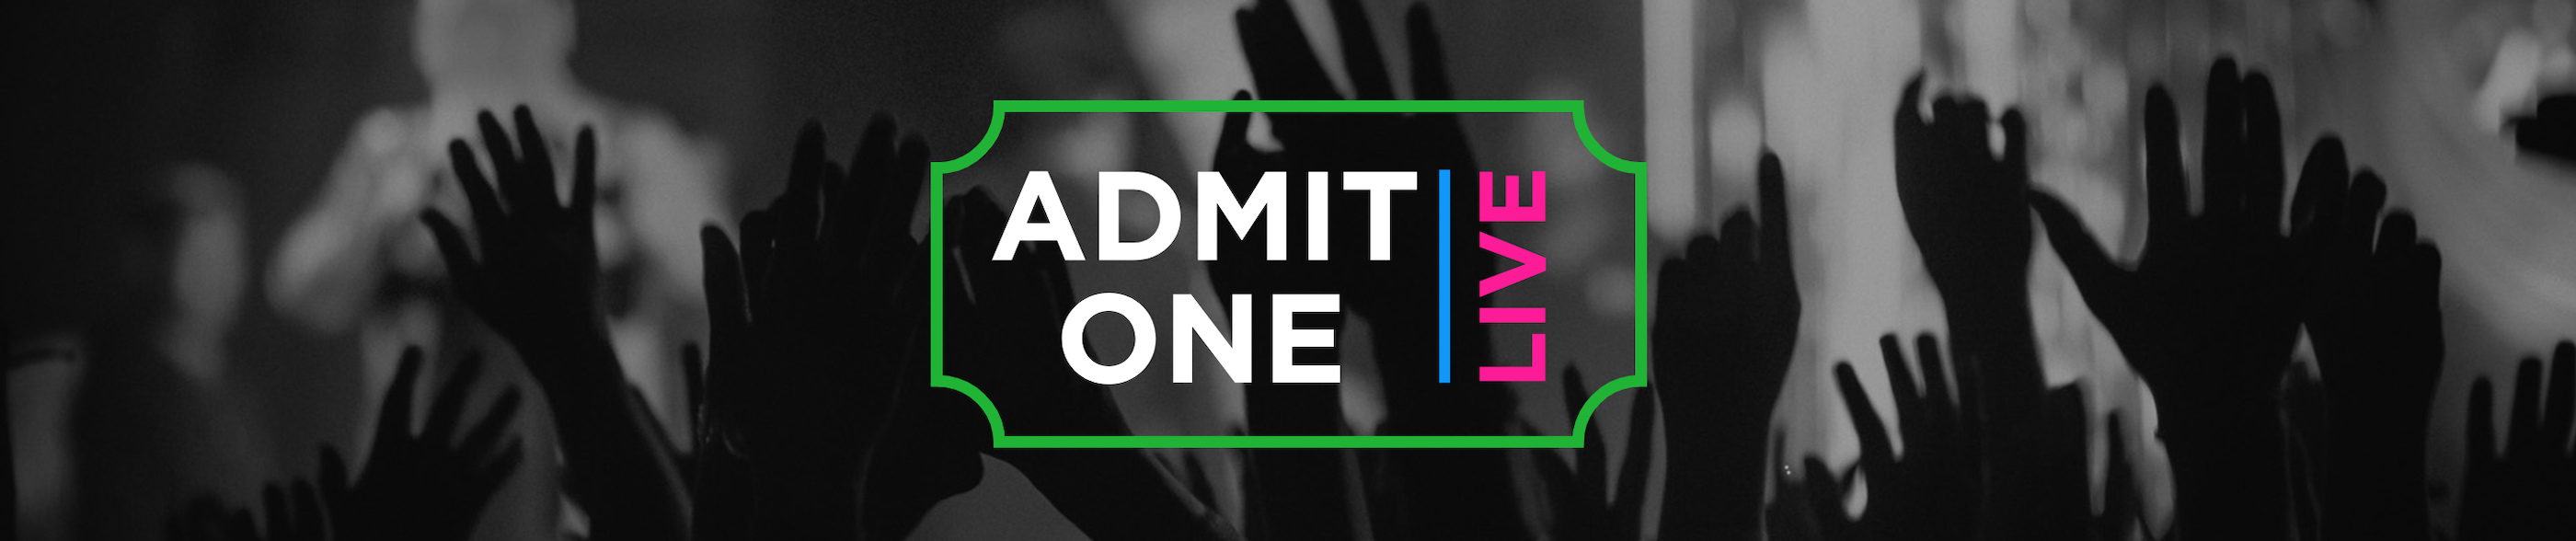 Tickets for MRG Live + MusiqMTL Present: Saint Asonia  in Québec from Admit One Live